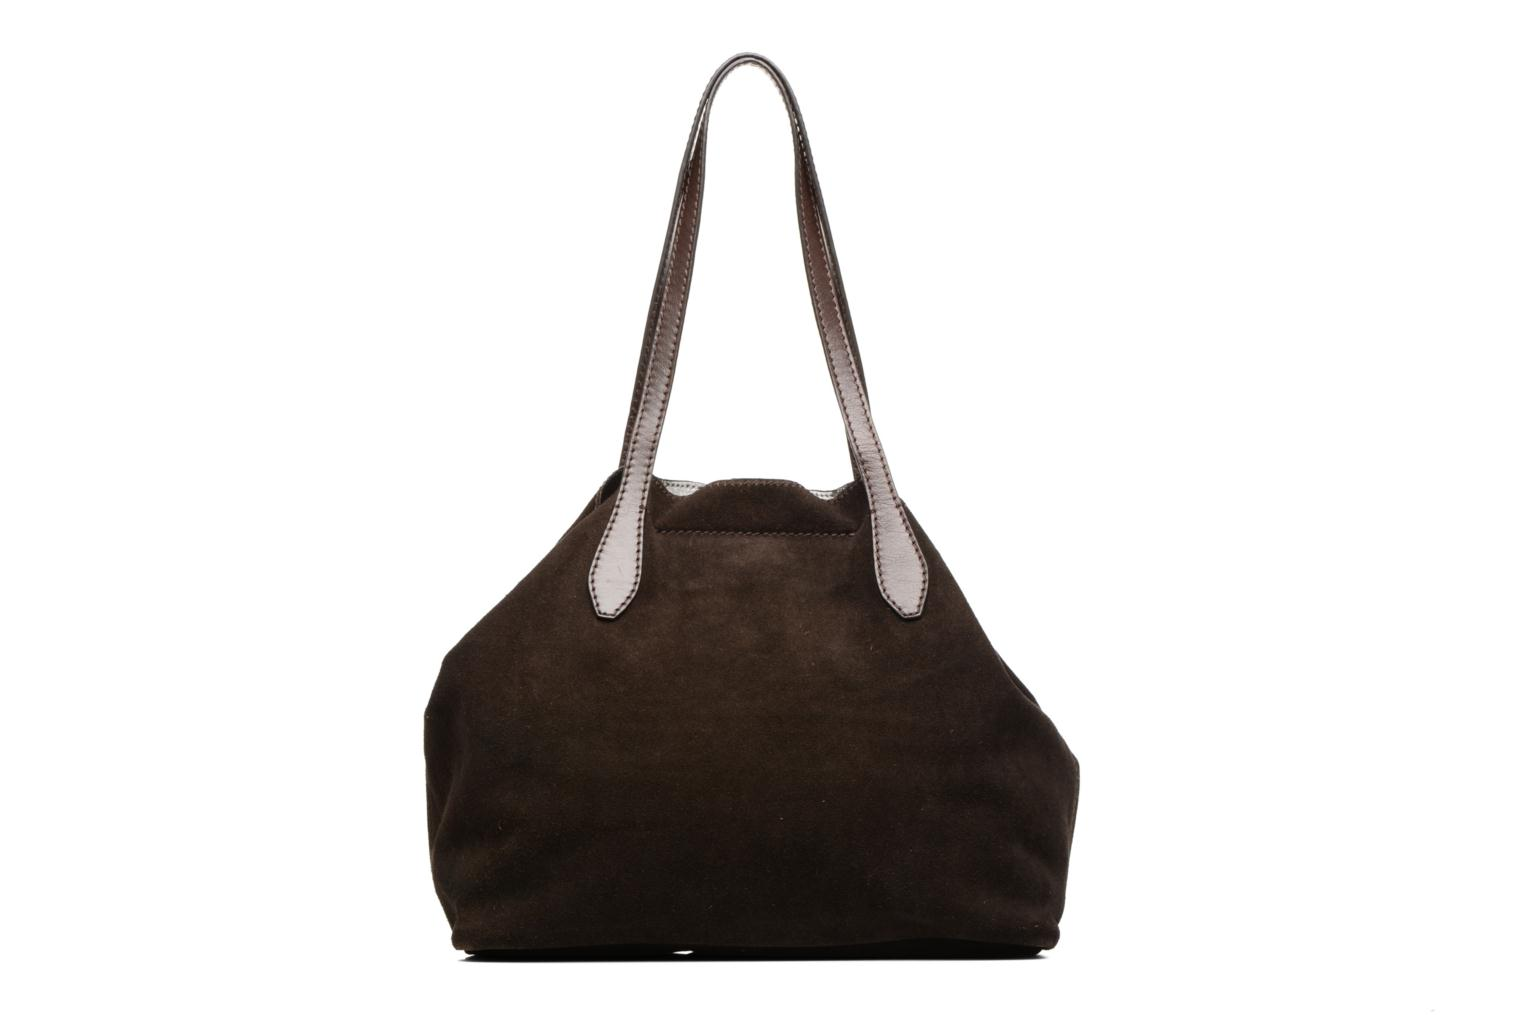 Borse Loxwood Sac Shopper Marrone immagine frontale